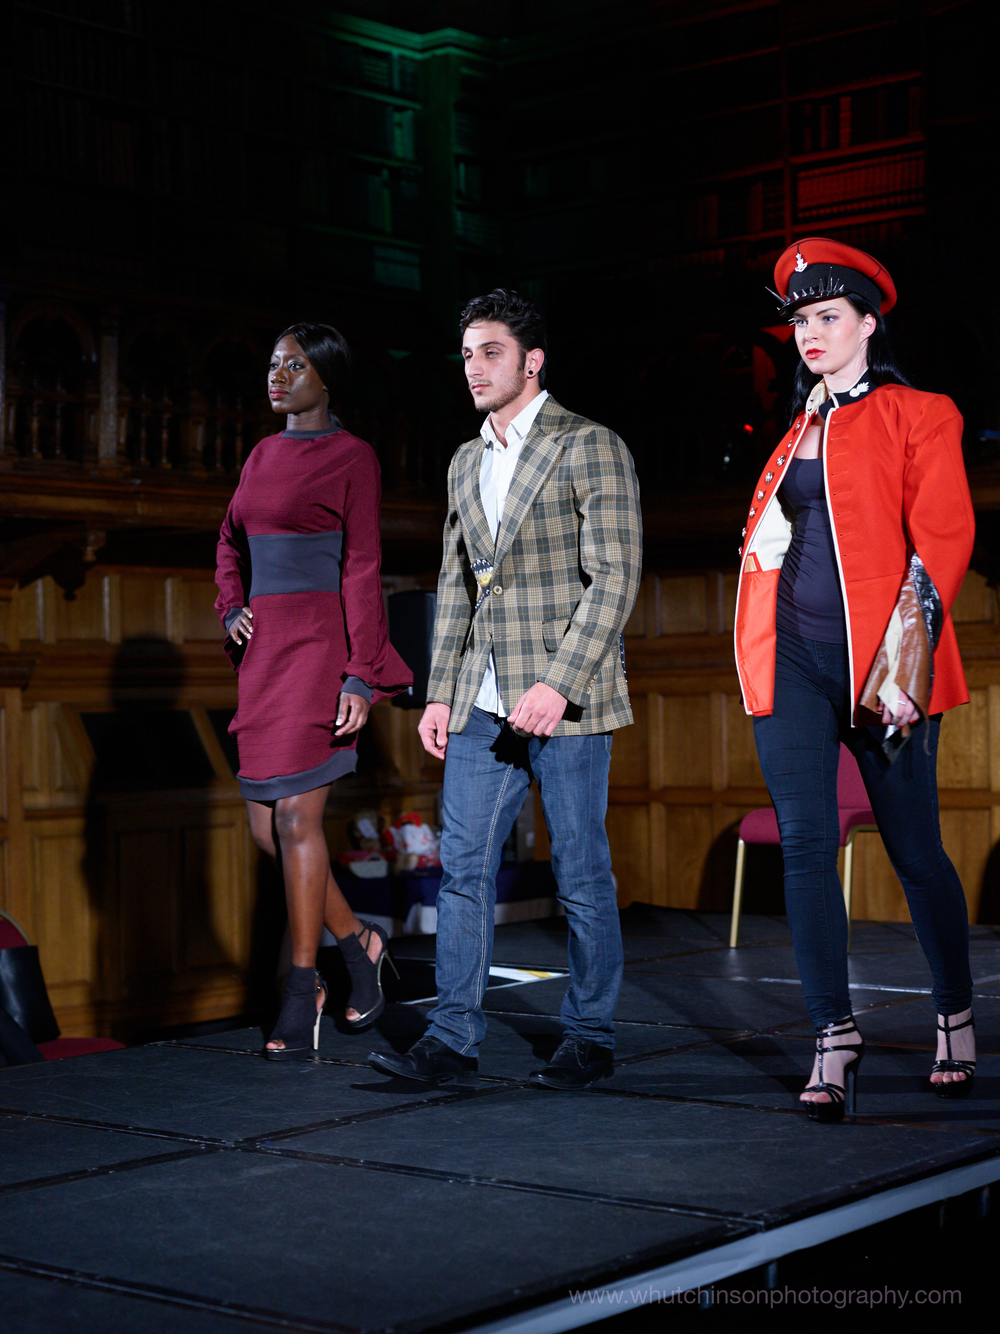 Croydon Fashion Show _29.jpg